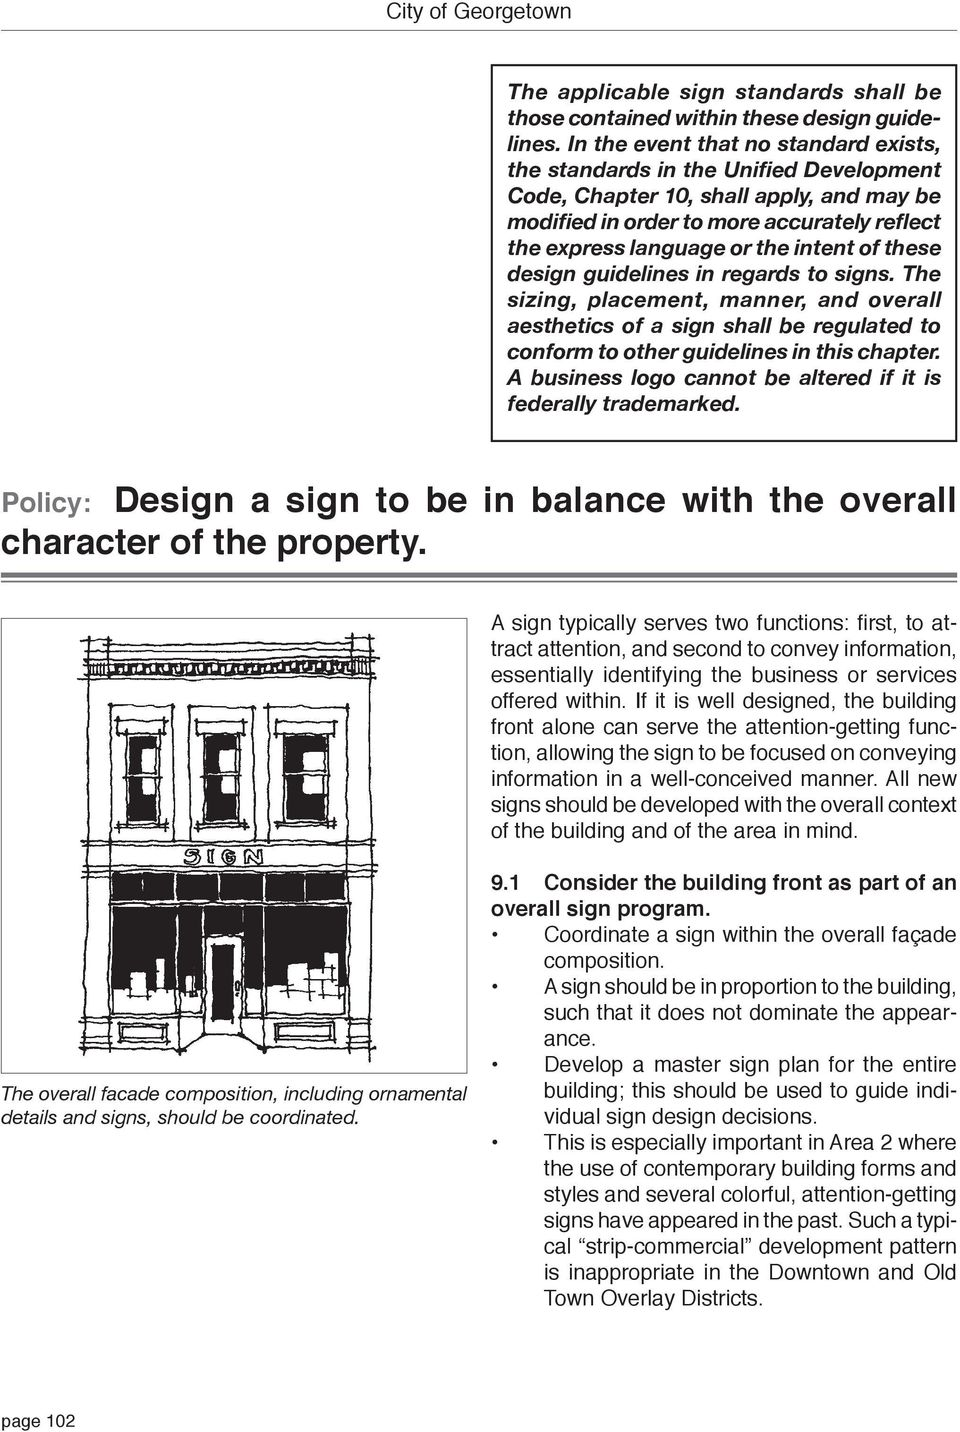 intent of these design guidelines in regards to signs. The sizing, placement, manner, and overall aesthetics of a sign shall be regulated to conform to other guidelines in this chapter.